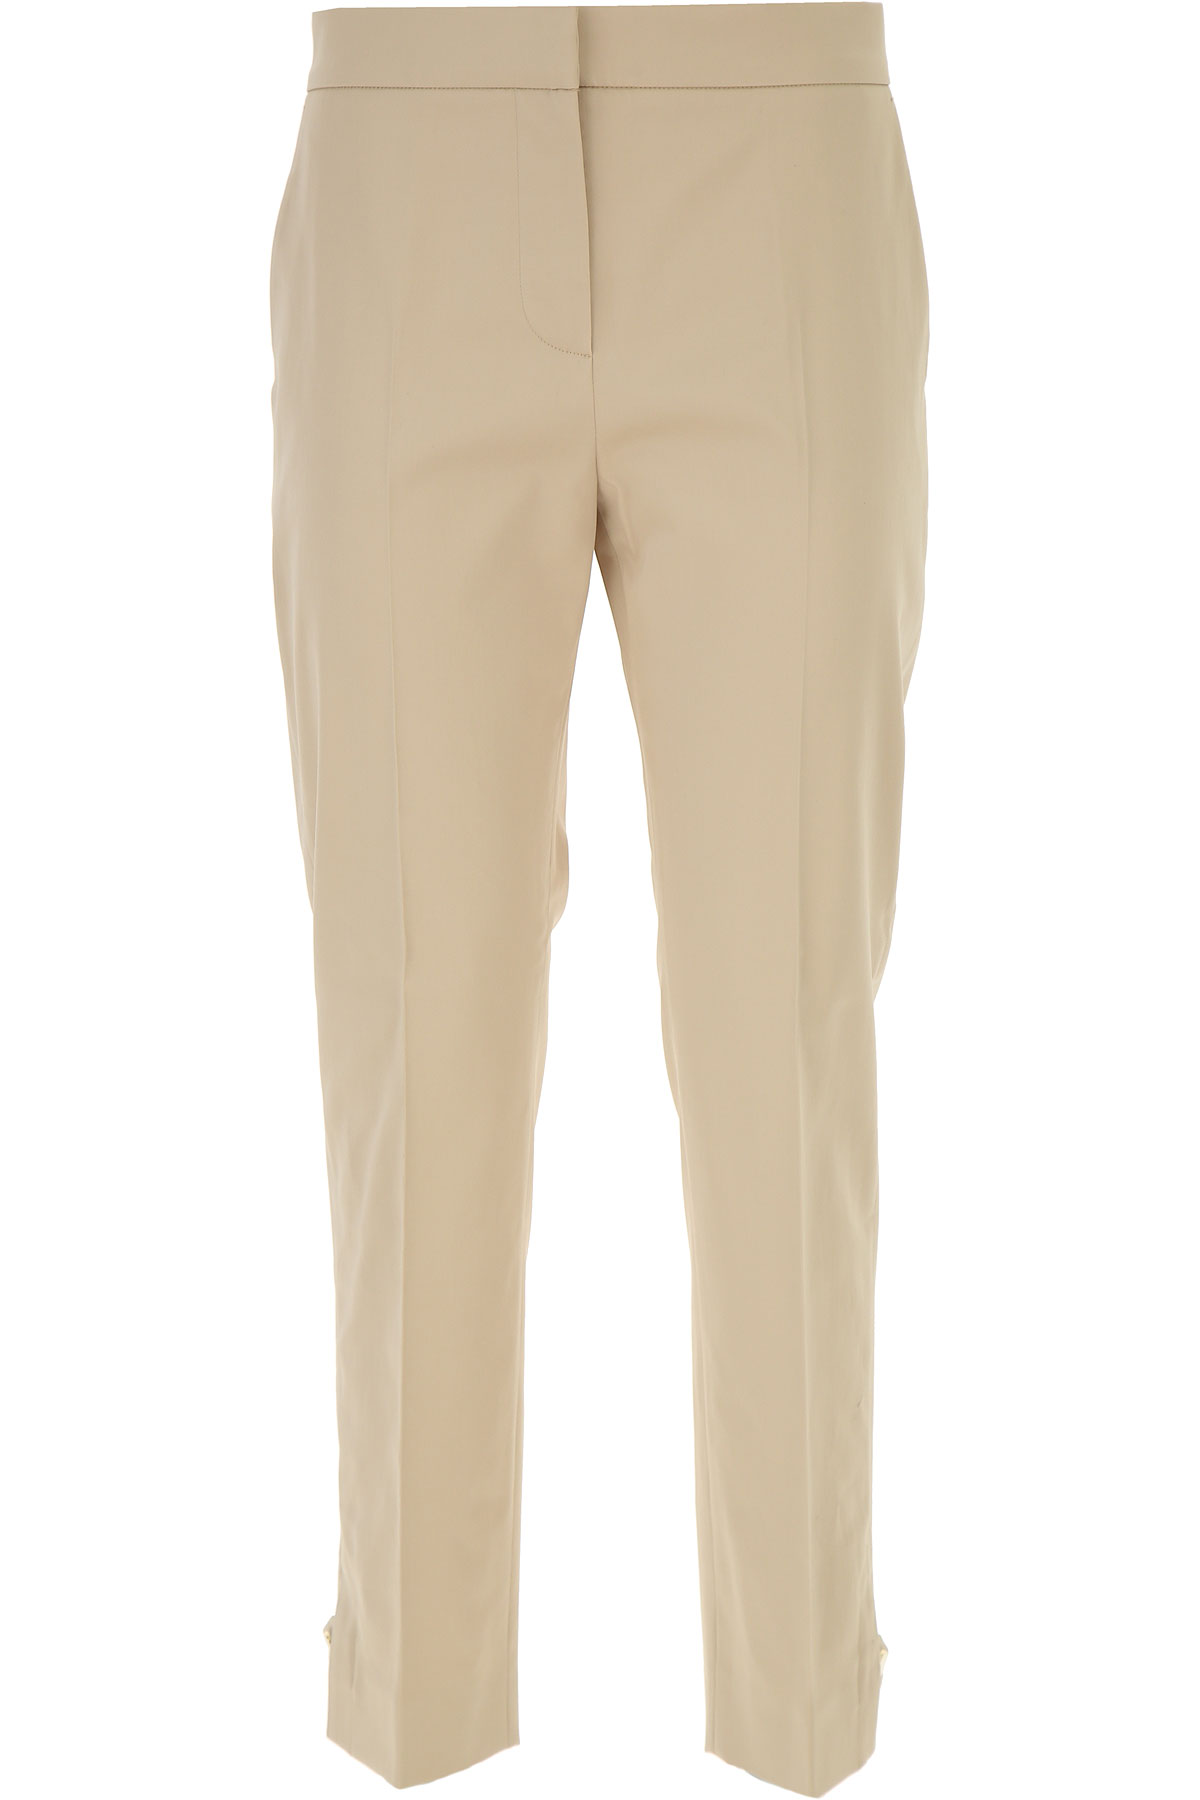 Image of Weekend by Max Mara Pants for Women On Sale, Beige, Cotton, 2017, 26 30